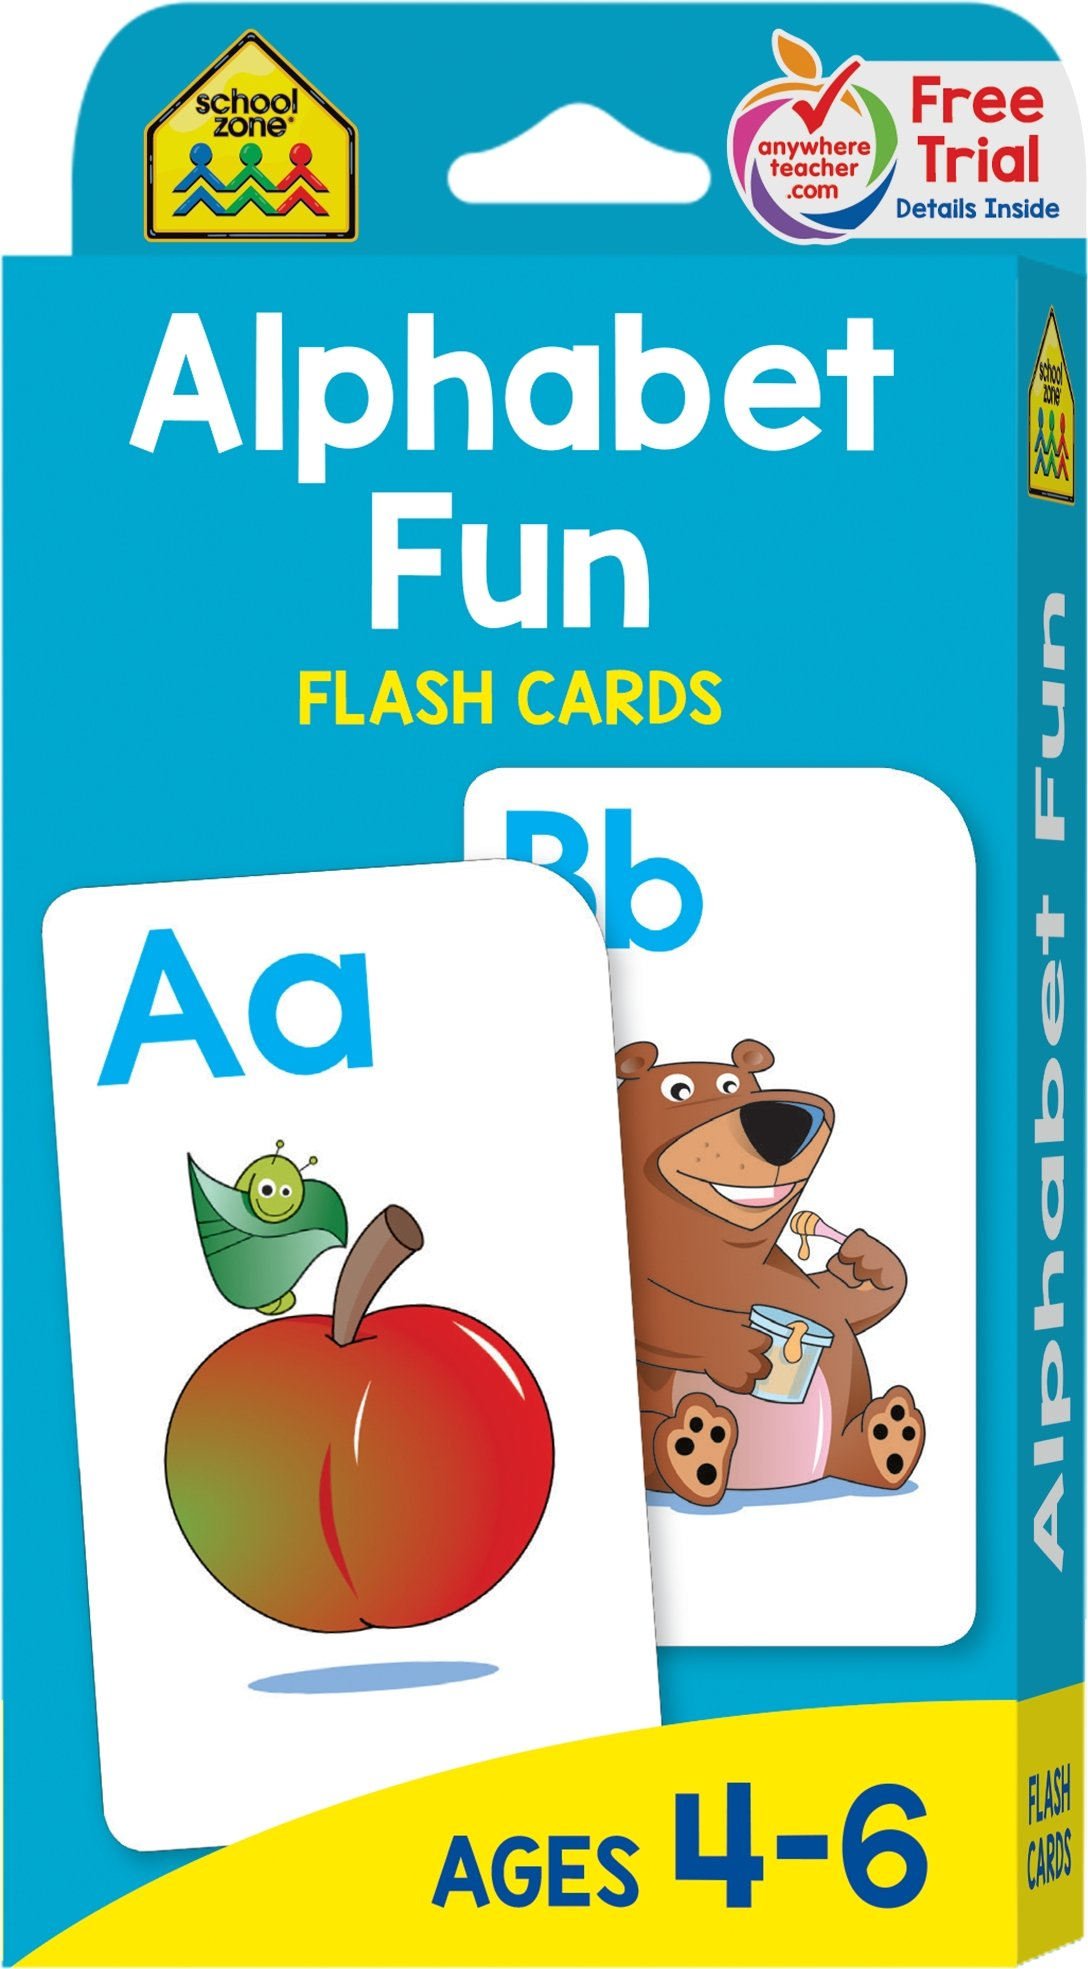 Download School Zone - Alphabet Fun Flash Cards - Ages 4 to 6, Preschool, Kindergarten, ABCs, Uppercase and Lowercase Letters, and Spelling PDF